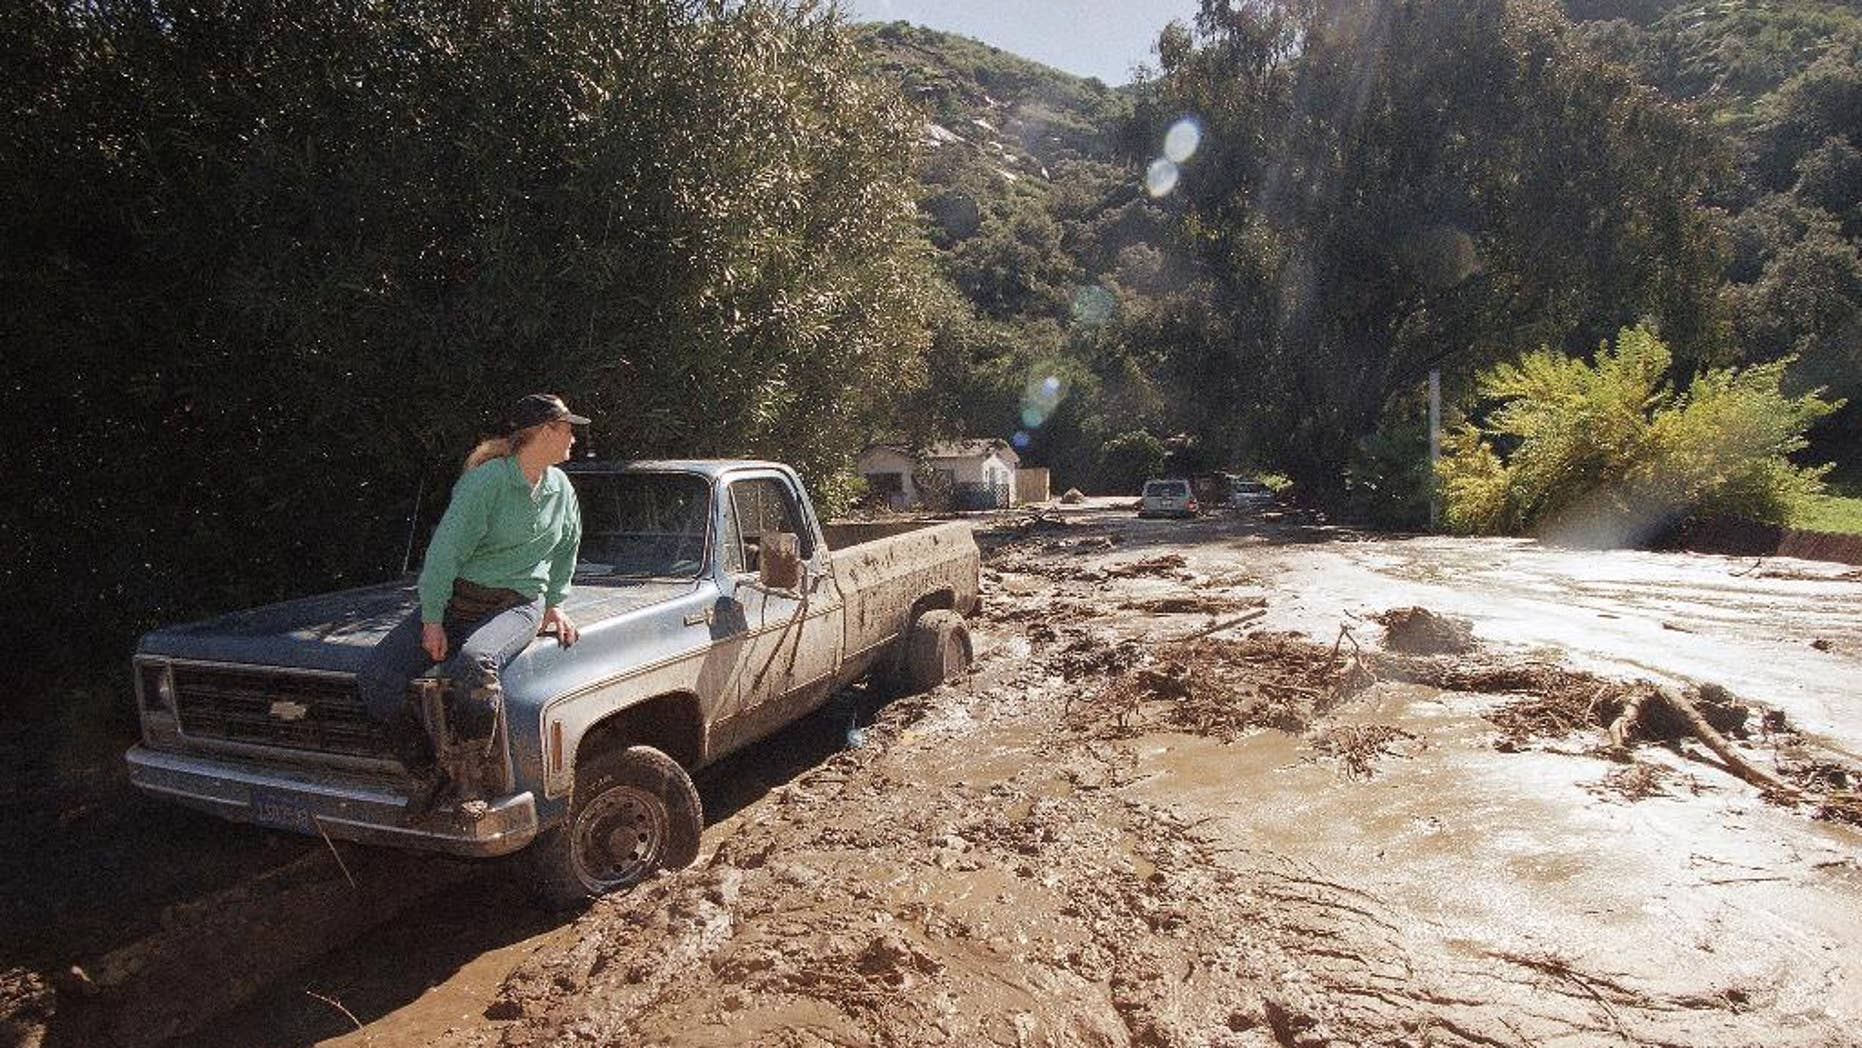 FILE - In this Feb. 24, 1998 file photo, a woman waits for a tow truck on the hood of her brother's pickup after a wall of mud plowed down Laguna Beach Canyon Road in Orange County, Calif. forcing her to evacuate her home, in background. A long anticipated El Nino weather warping is finally here. But for drought-struck California, it's too little, too late, meteorologists say. The National Weather Service Thursday proclaimed the somewhat infamous weather phenomenon El Nino is now in place. It's a warming of a certain patch of the central Pacific that changes weather patterns worldwide, associated with flooding in some places, droughts elsewhere, a generally warmer globe, and fewer Atlantic hurricanes. El Ninos are usually so important that economists even track it because of how it affects commodities. This year's El Nino that has arrived isn't big and is late so it's unlikely to do much to alleviate the current California drought. (AP Photo/Nick Ut, File)